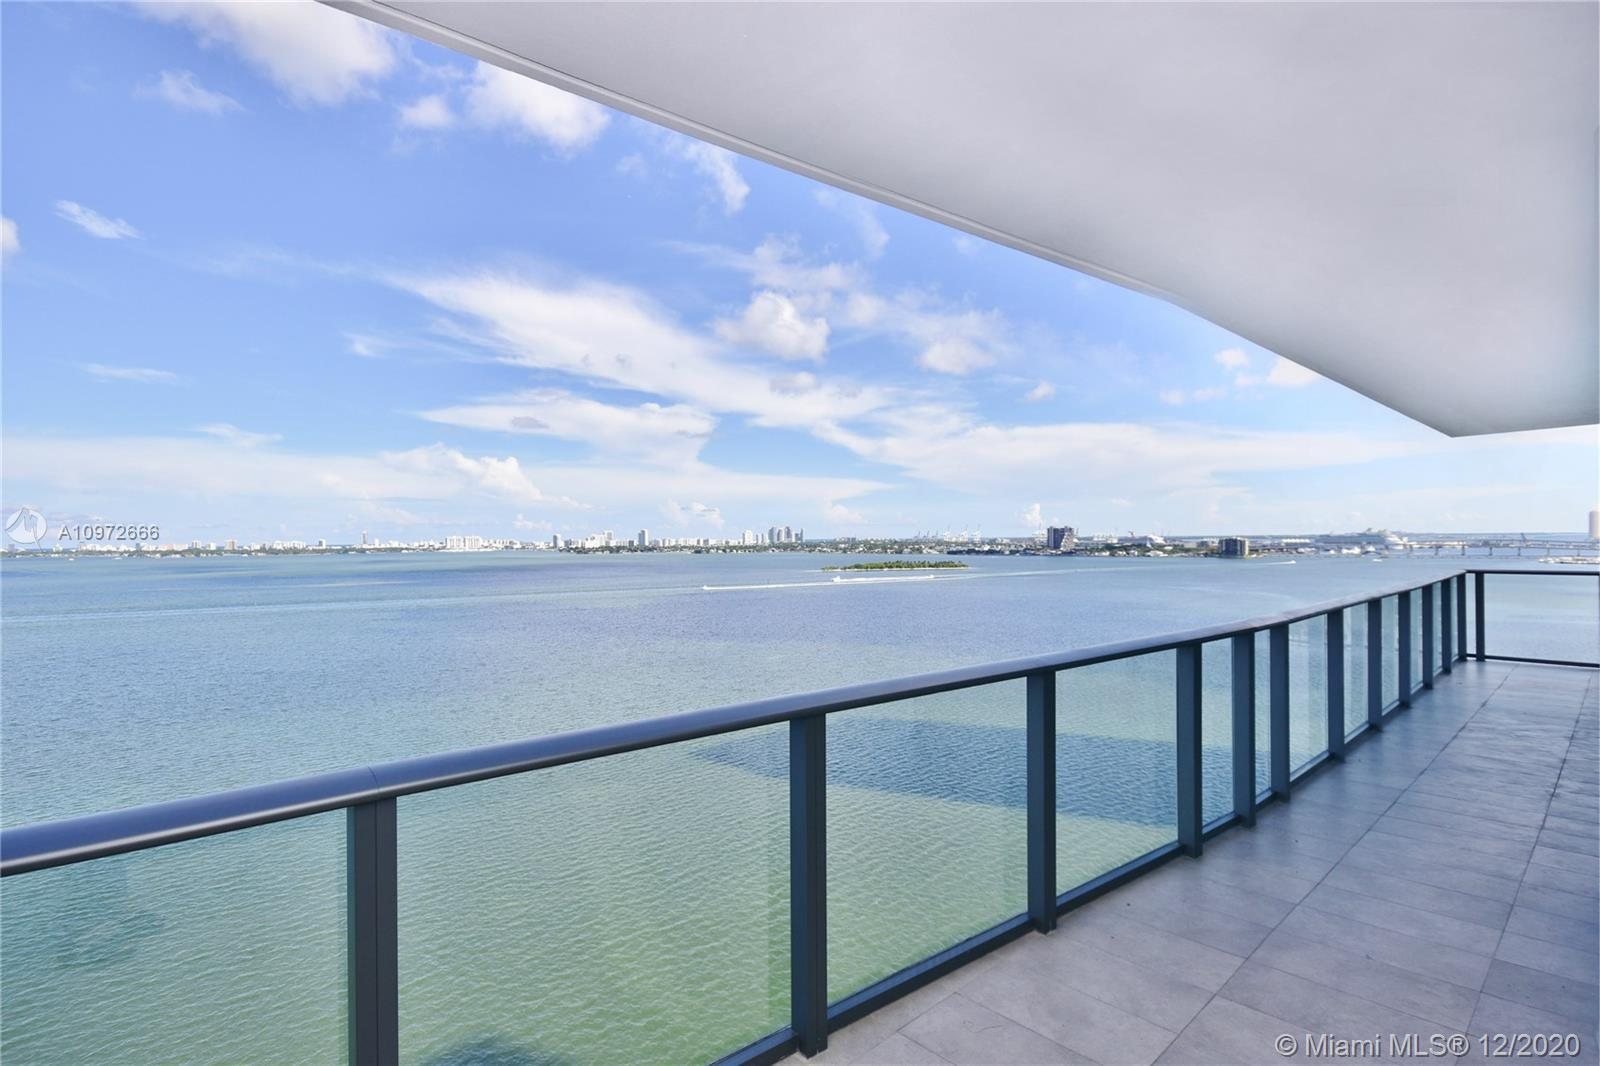 This 3 bedrooms and 3.5 bathroom corner unit in the desirable line 01 (South) has a breathtaking ope